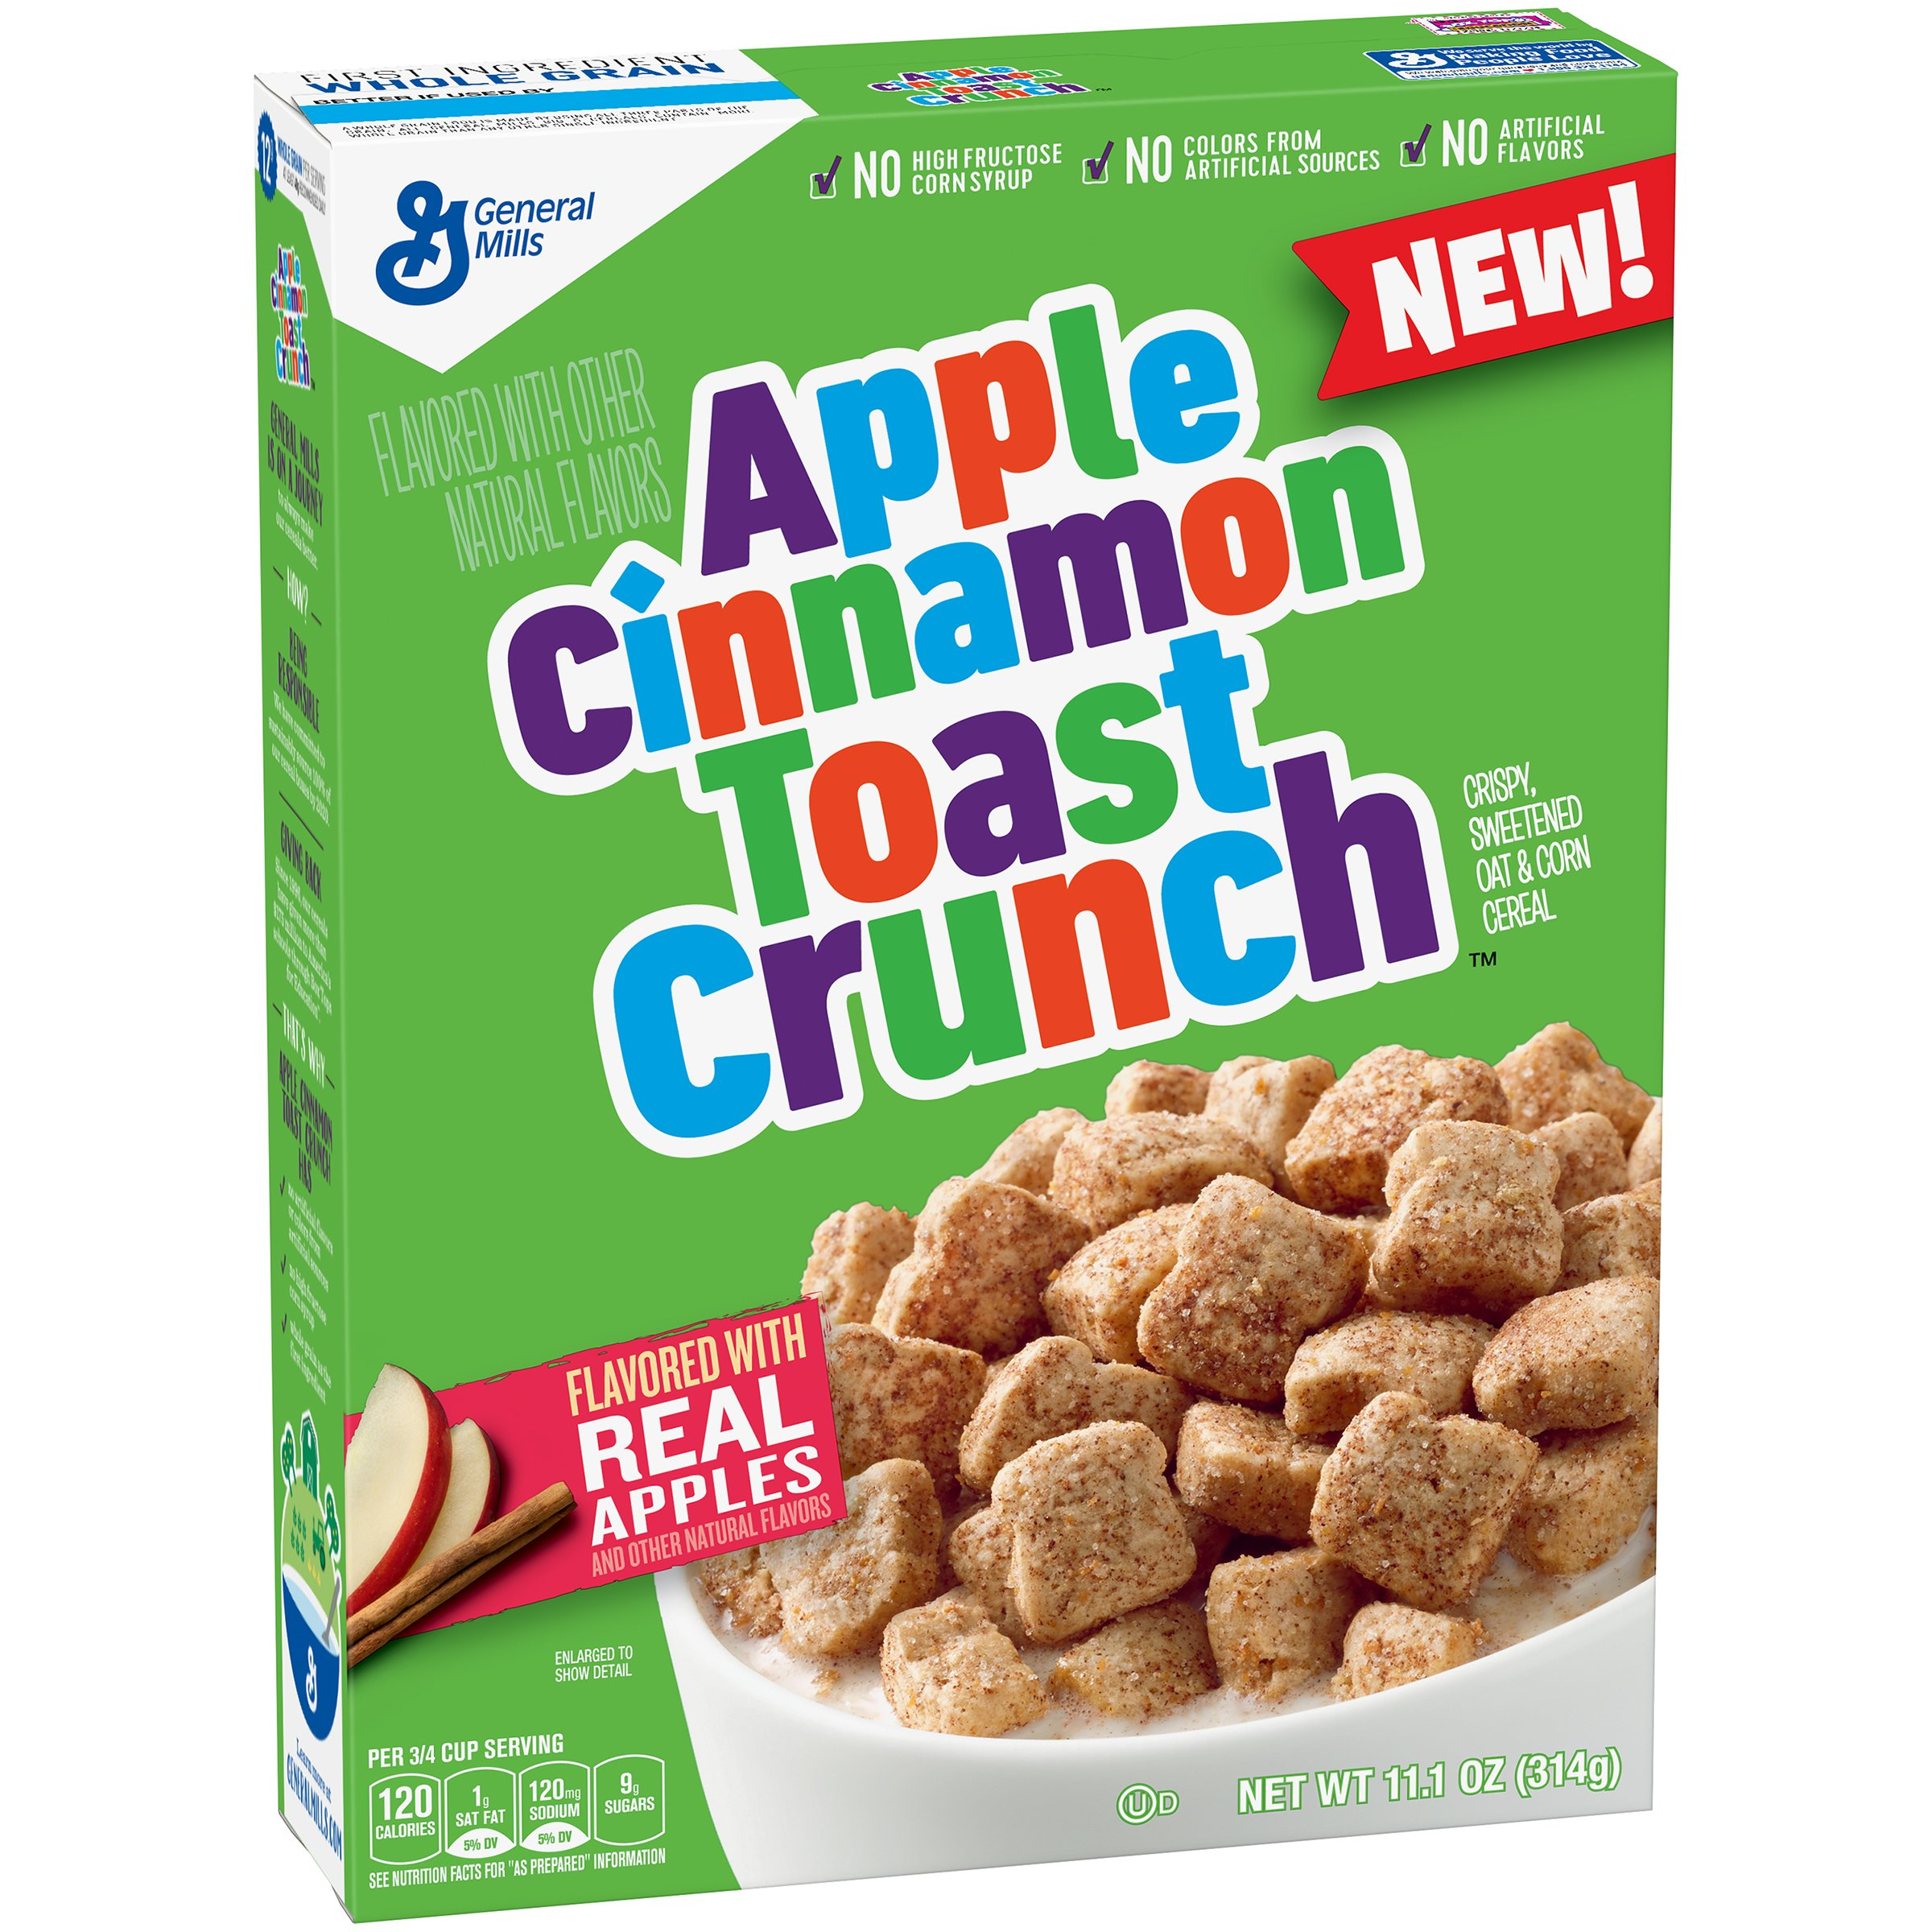 Amazon.com: Strawberry Toast Crunch Cereal, 18.25 Oz: